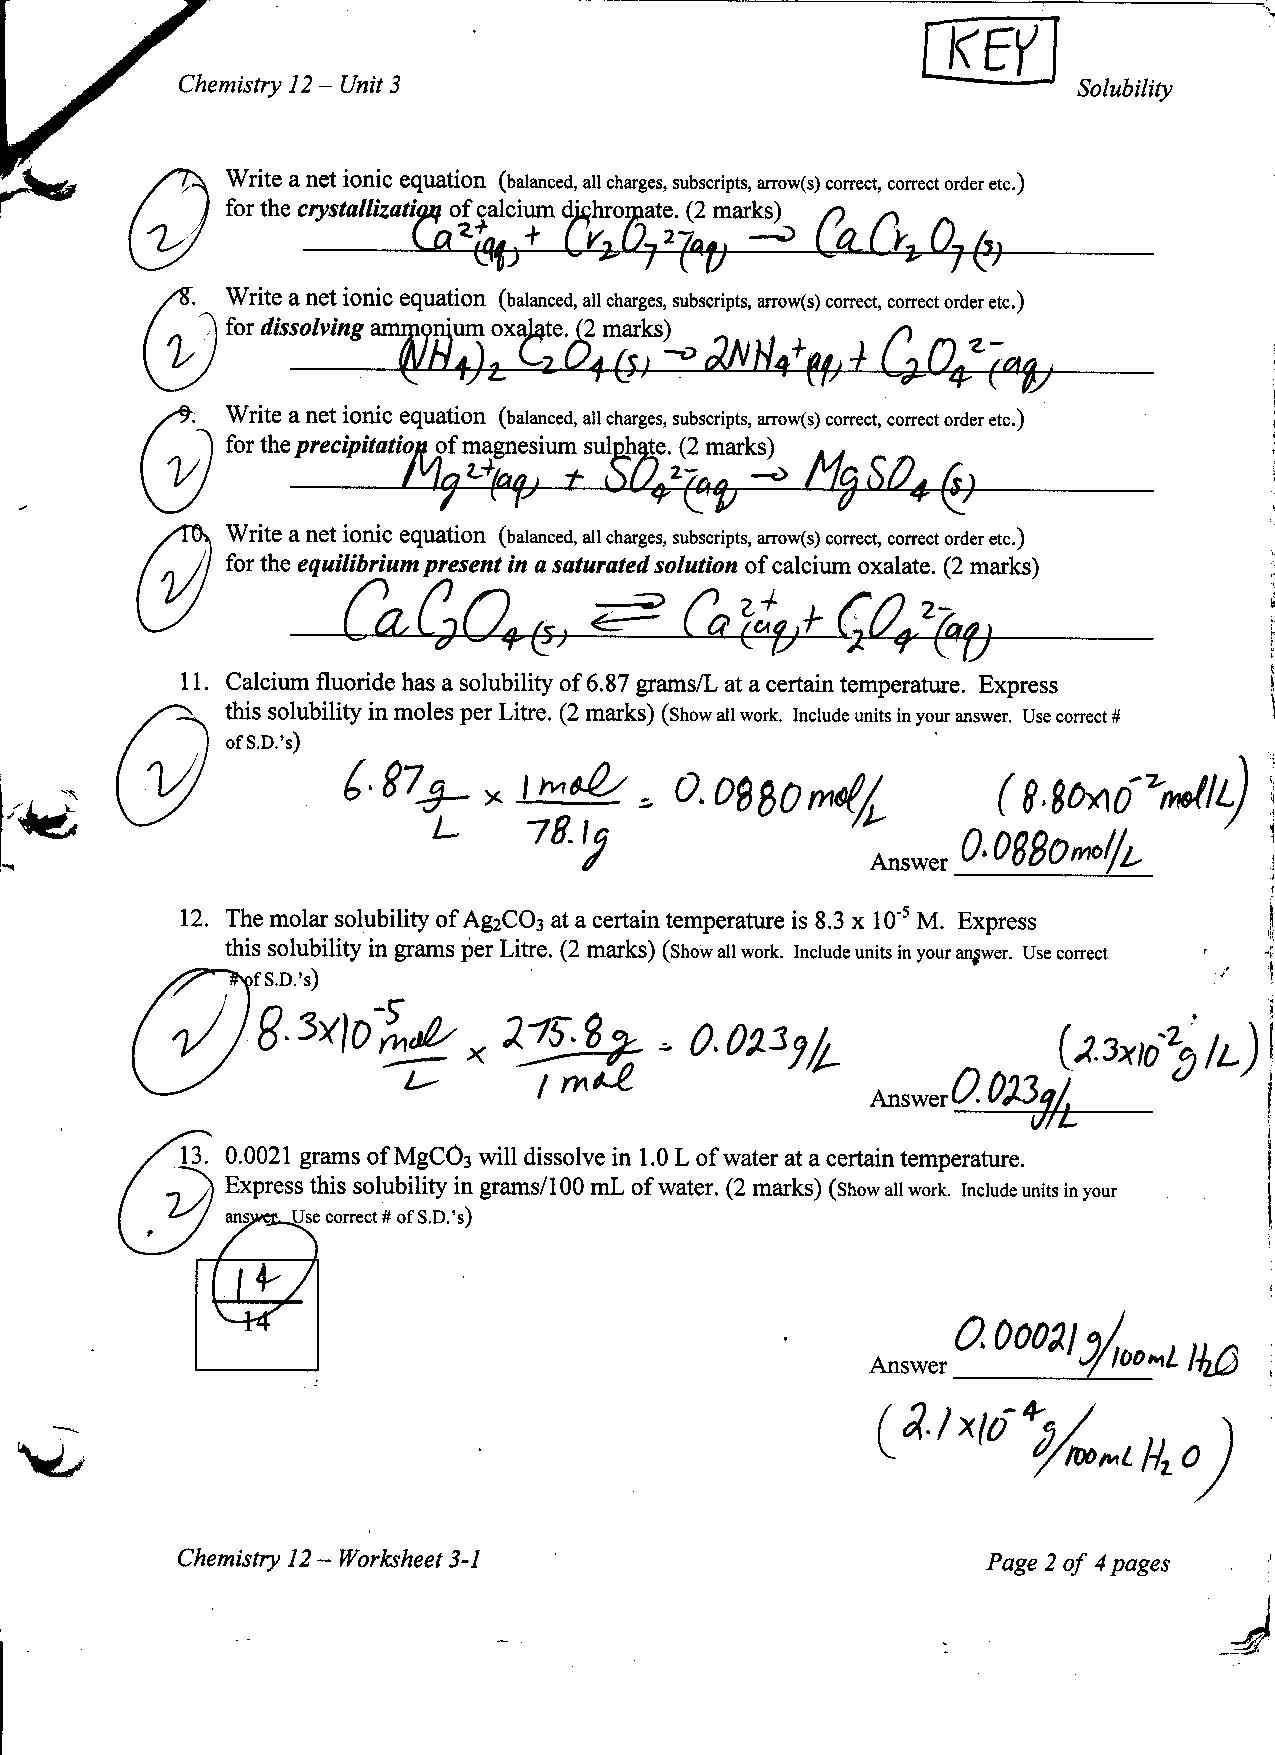 Cozy Chemistry Practice Problems Scientific Notation Get